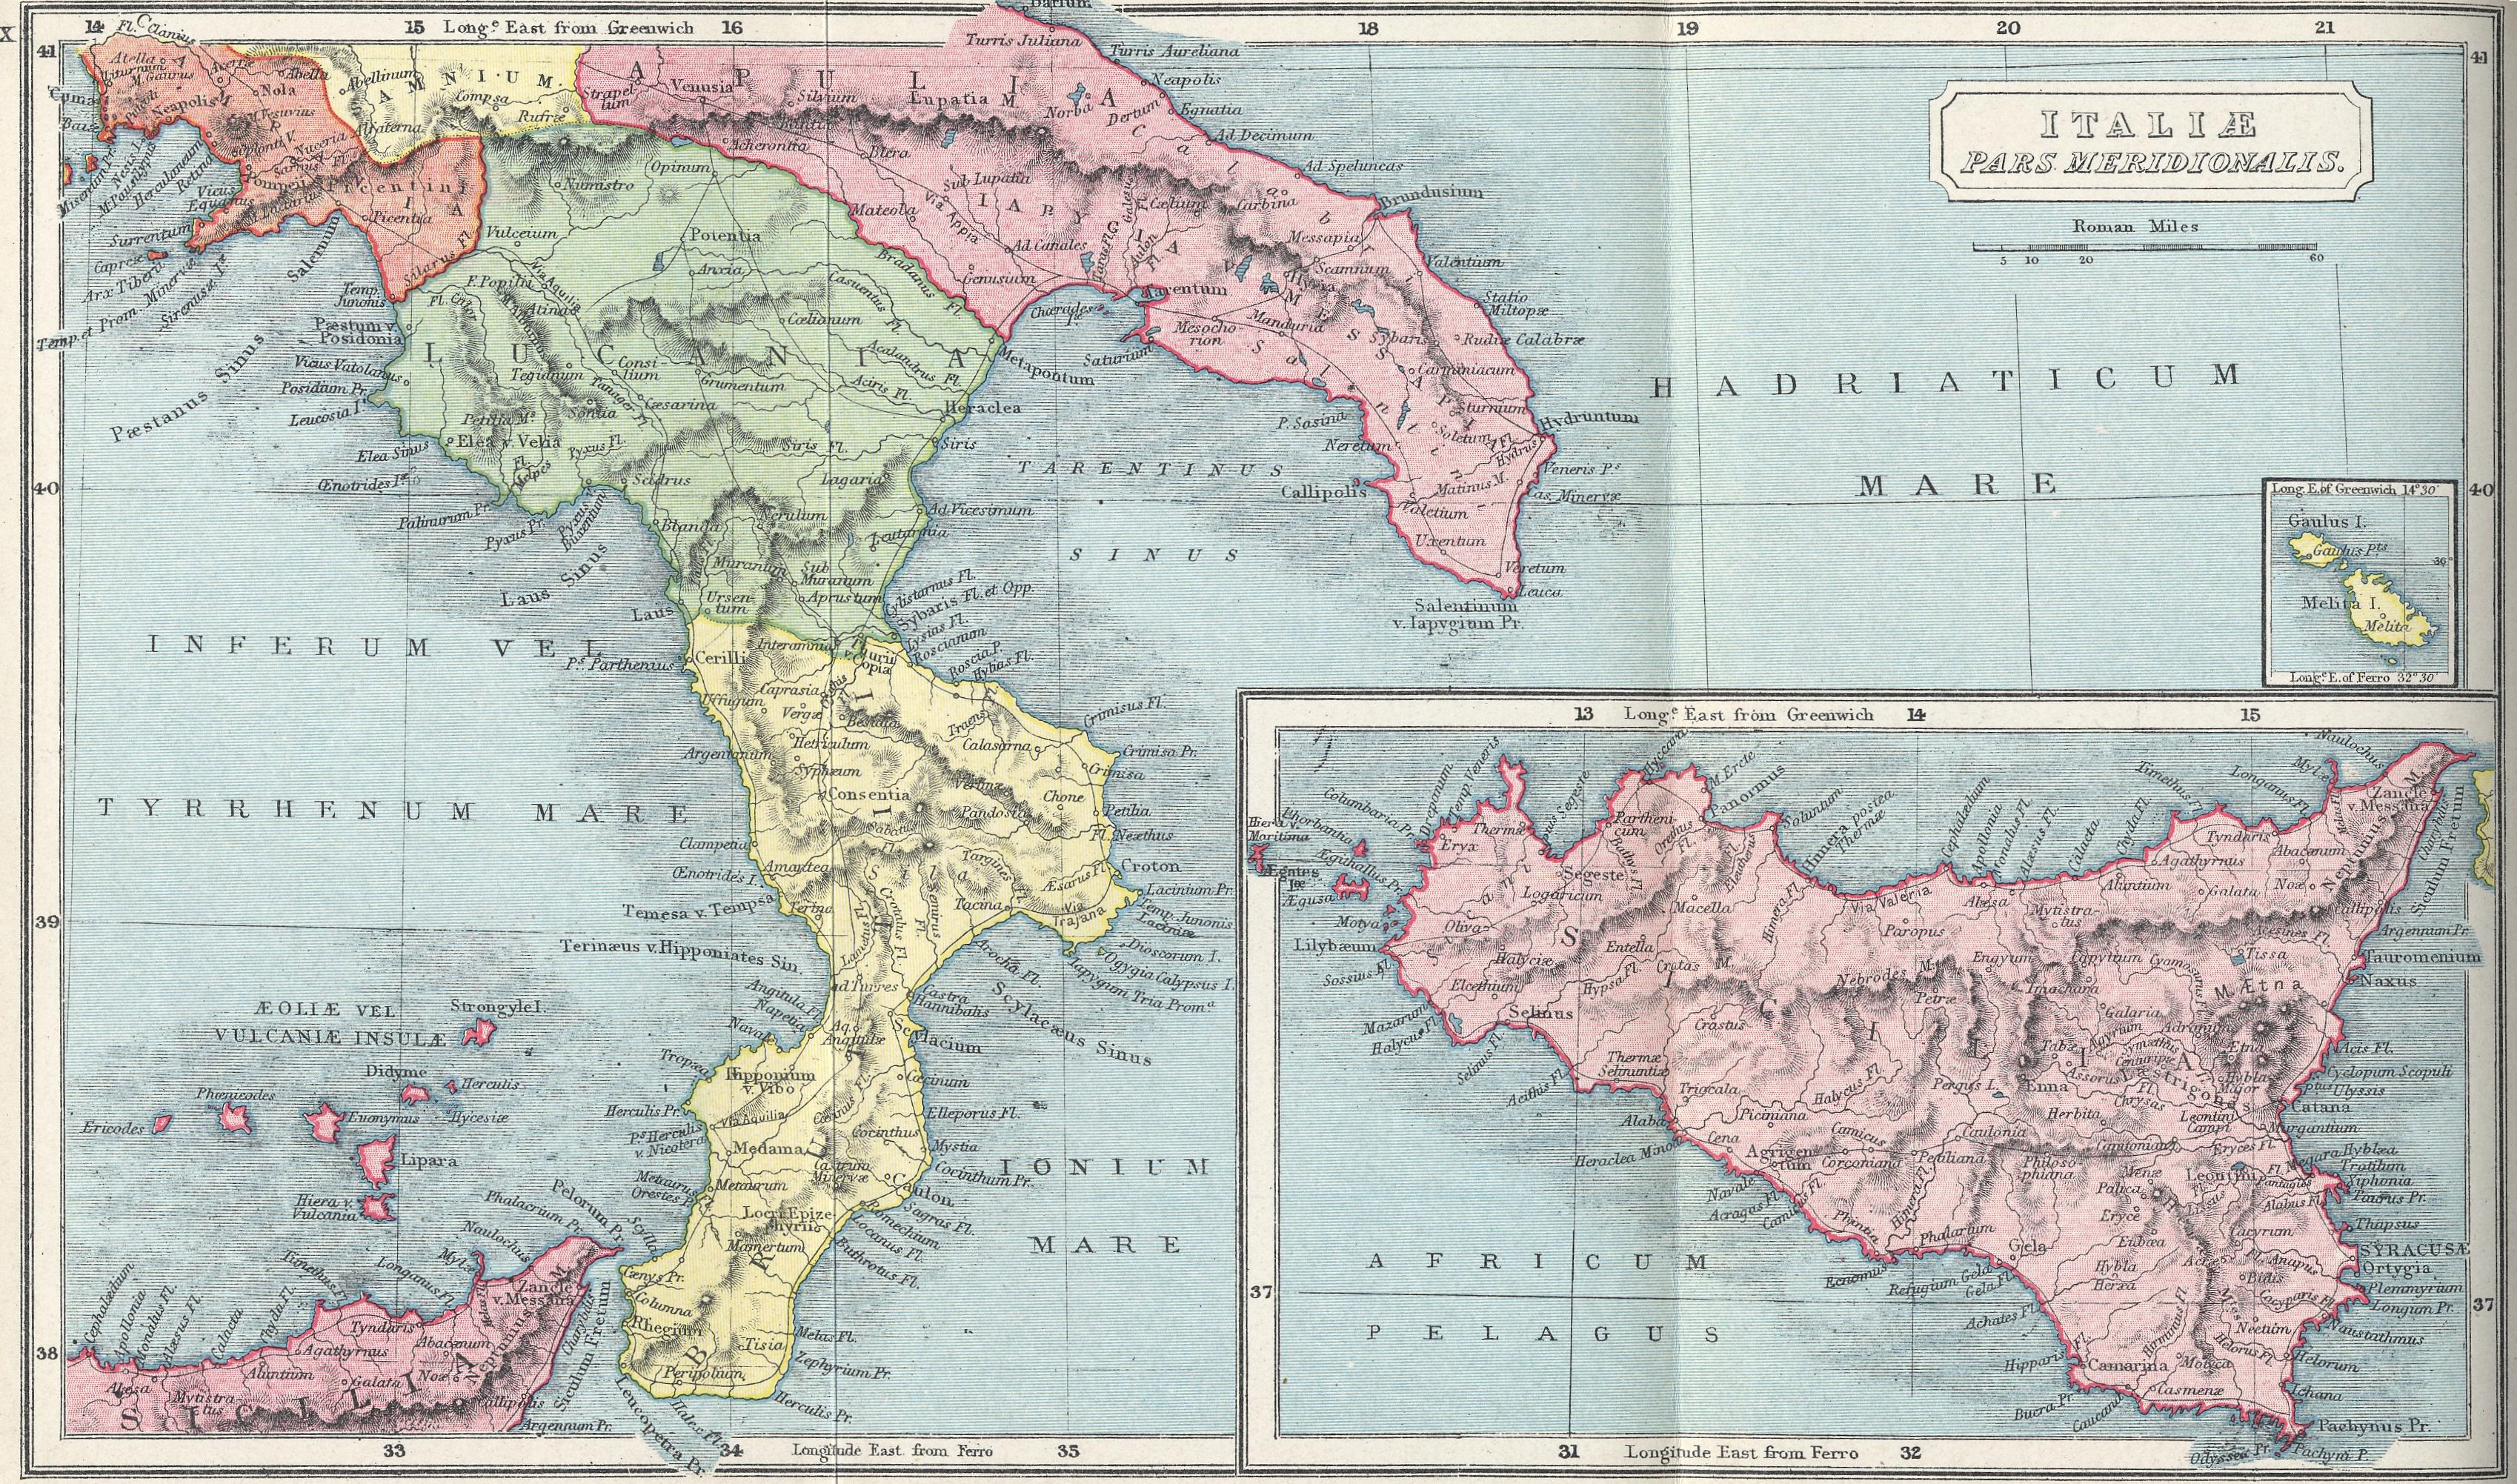 Map of Southern Italy 70 BC - AD 180 with inset of Sicily